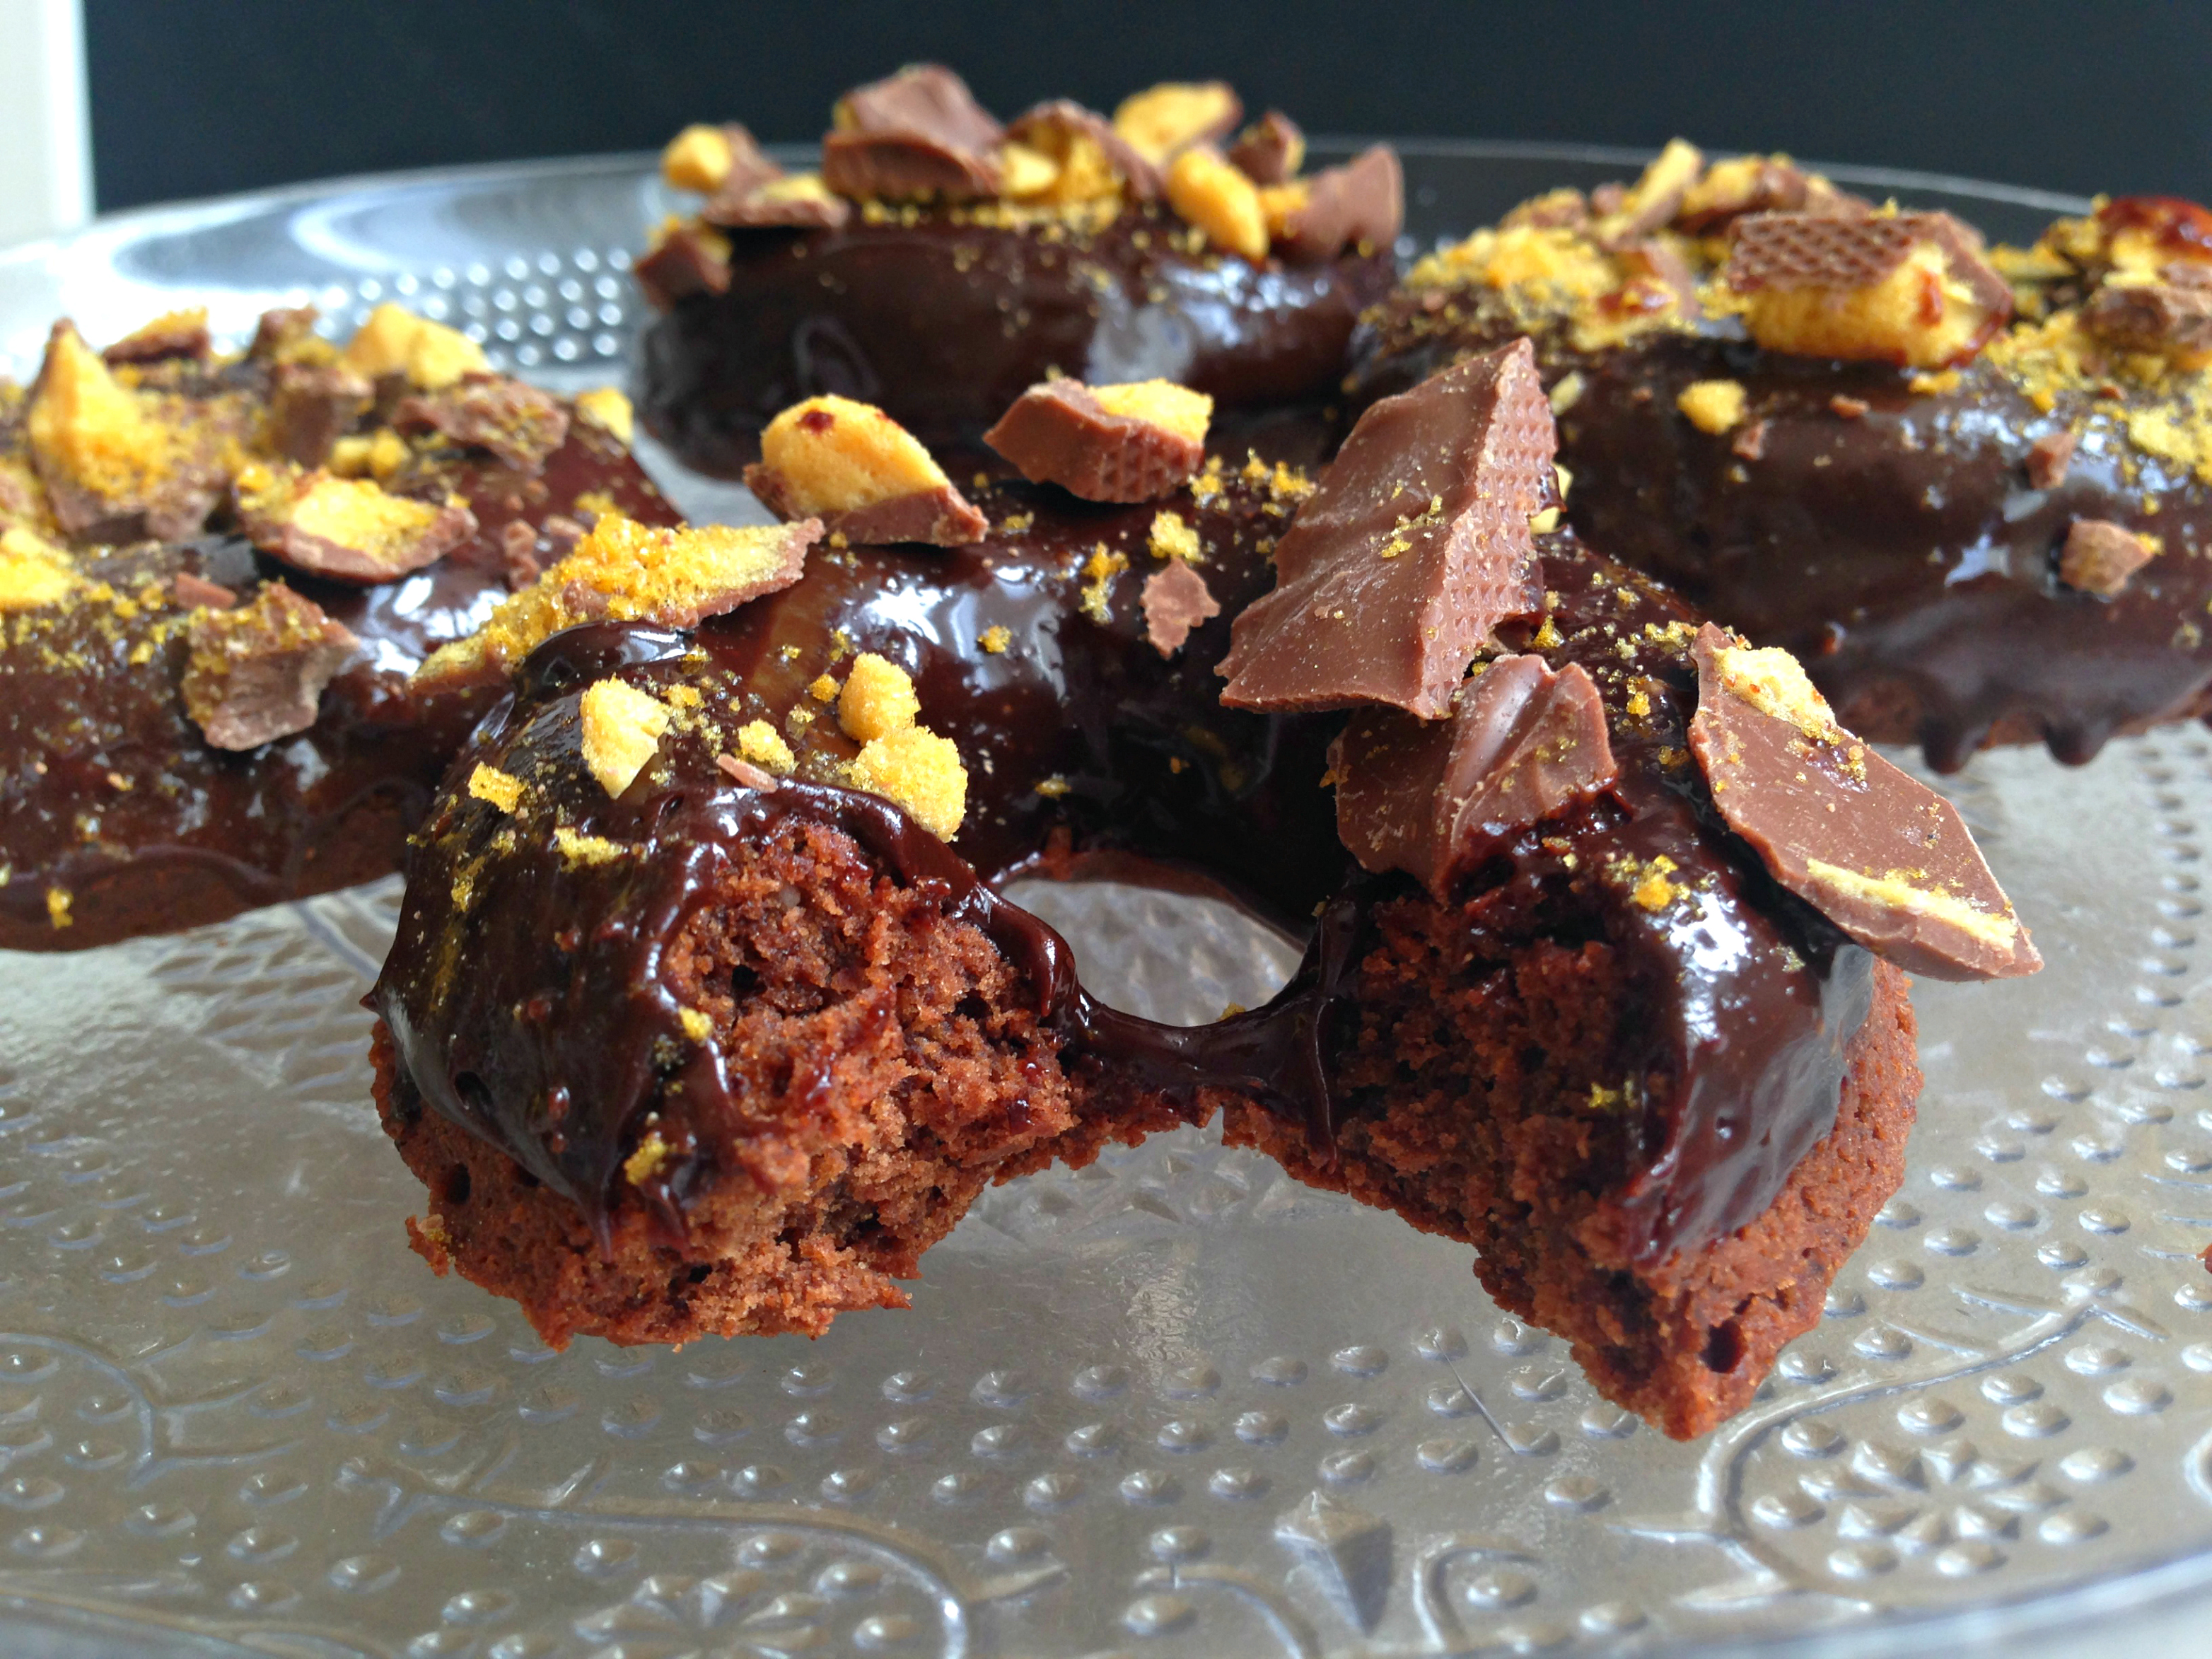 Baked Chocolate Doughnuts with Honeycomb Crumble | kerrycooks.com